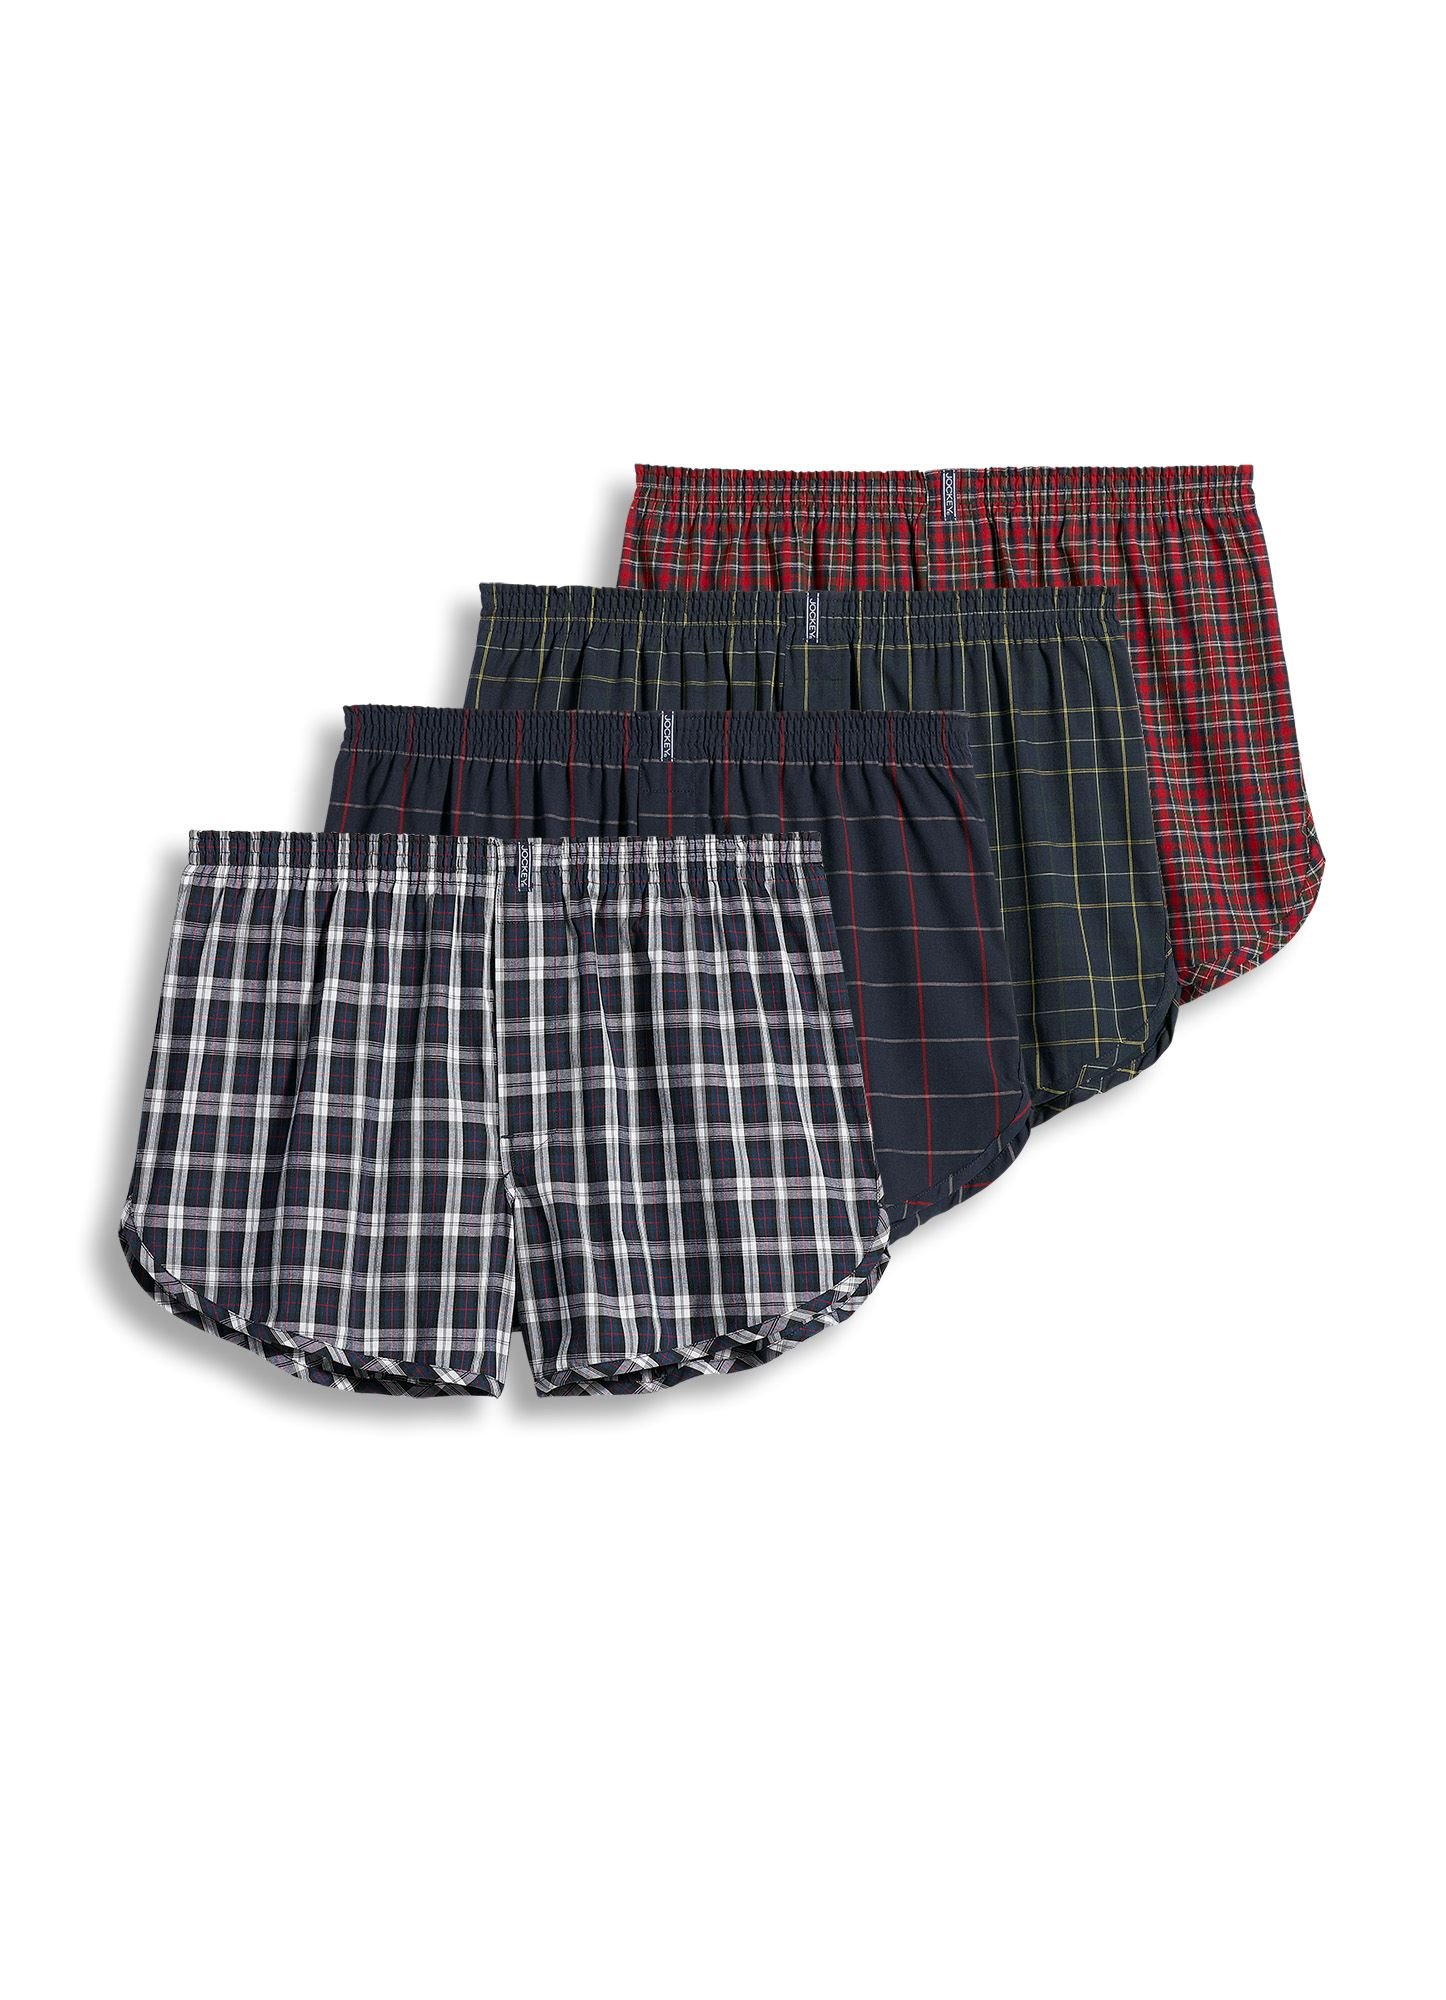 Jockey Men's Underwear Tapered Boxer - 4 Pack, Tartans, L by Jockey